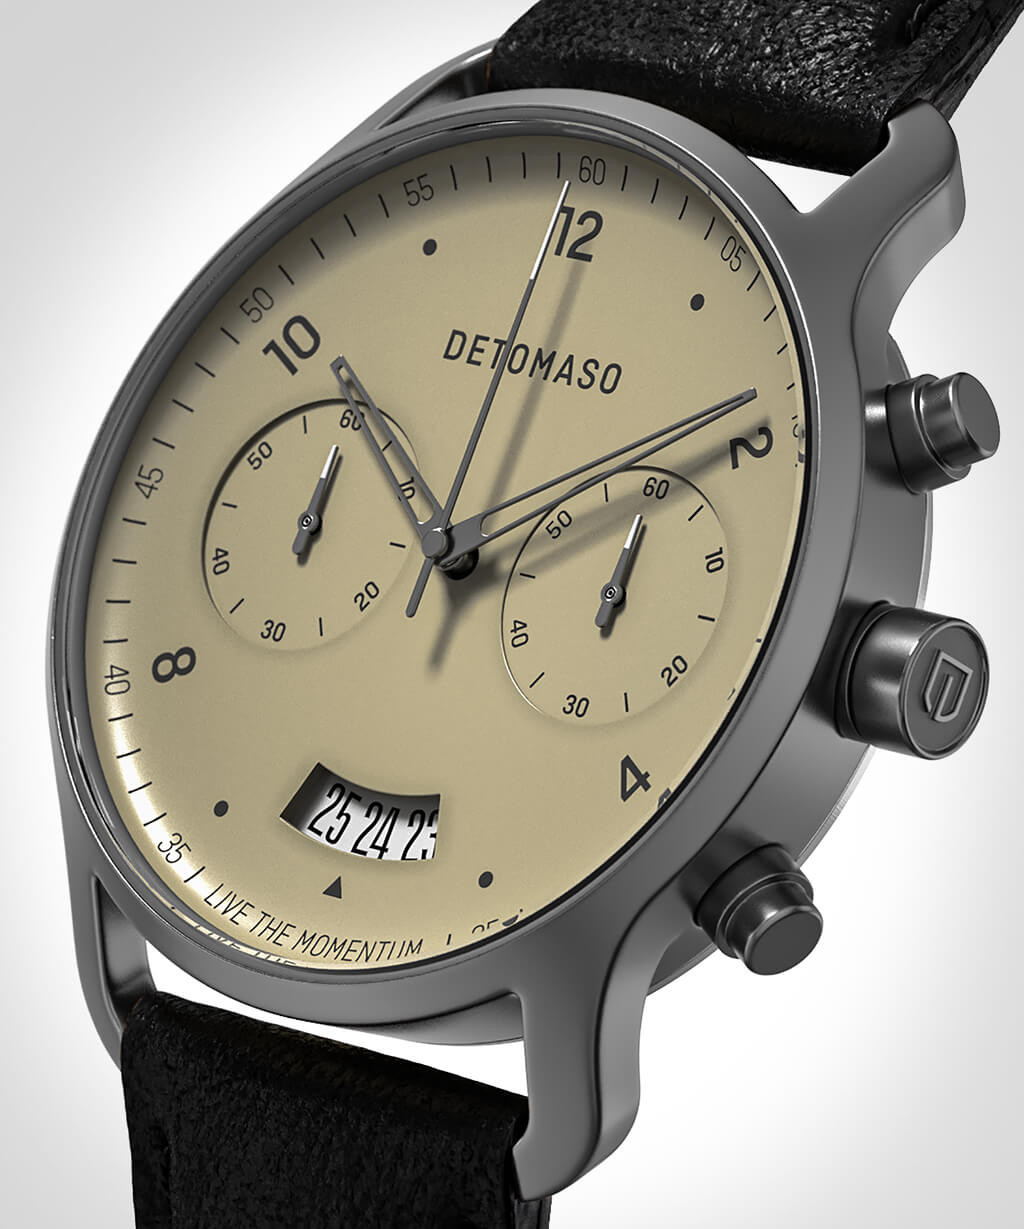 SORPASSO CHRONOGRAPH IVORY - LEATHER STRAP BLACK